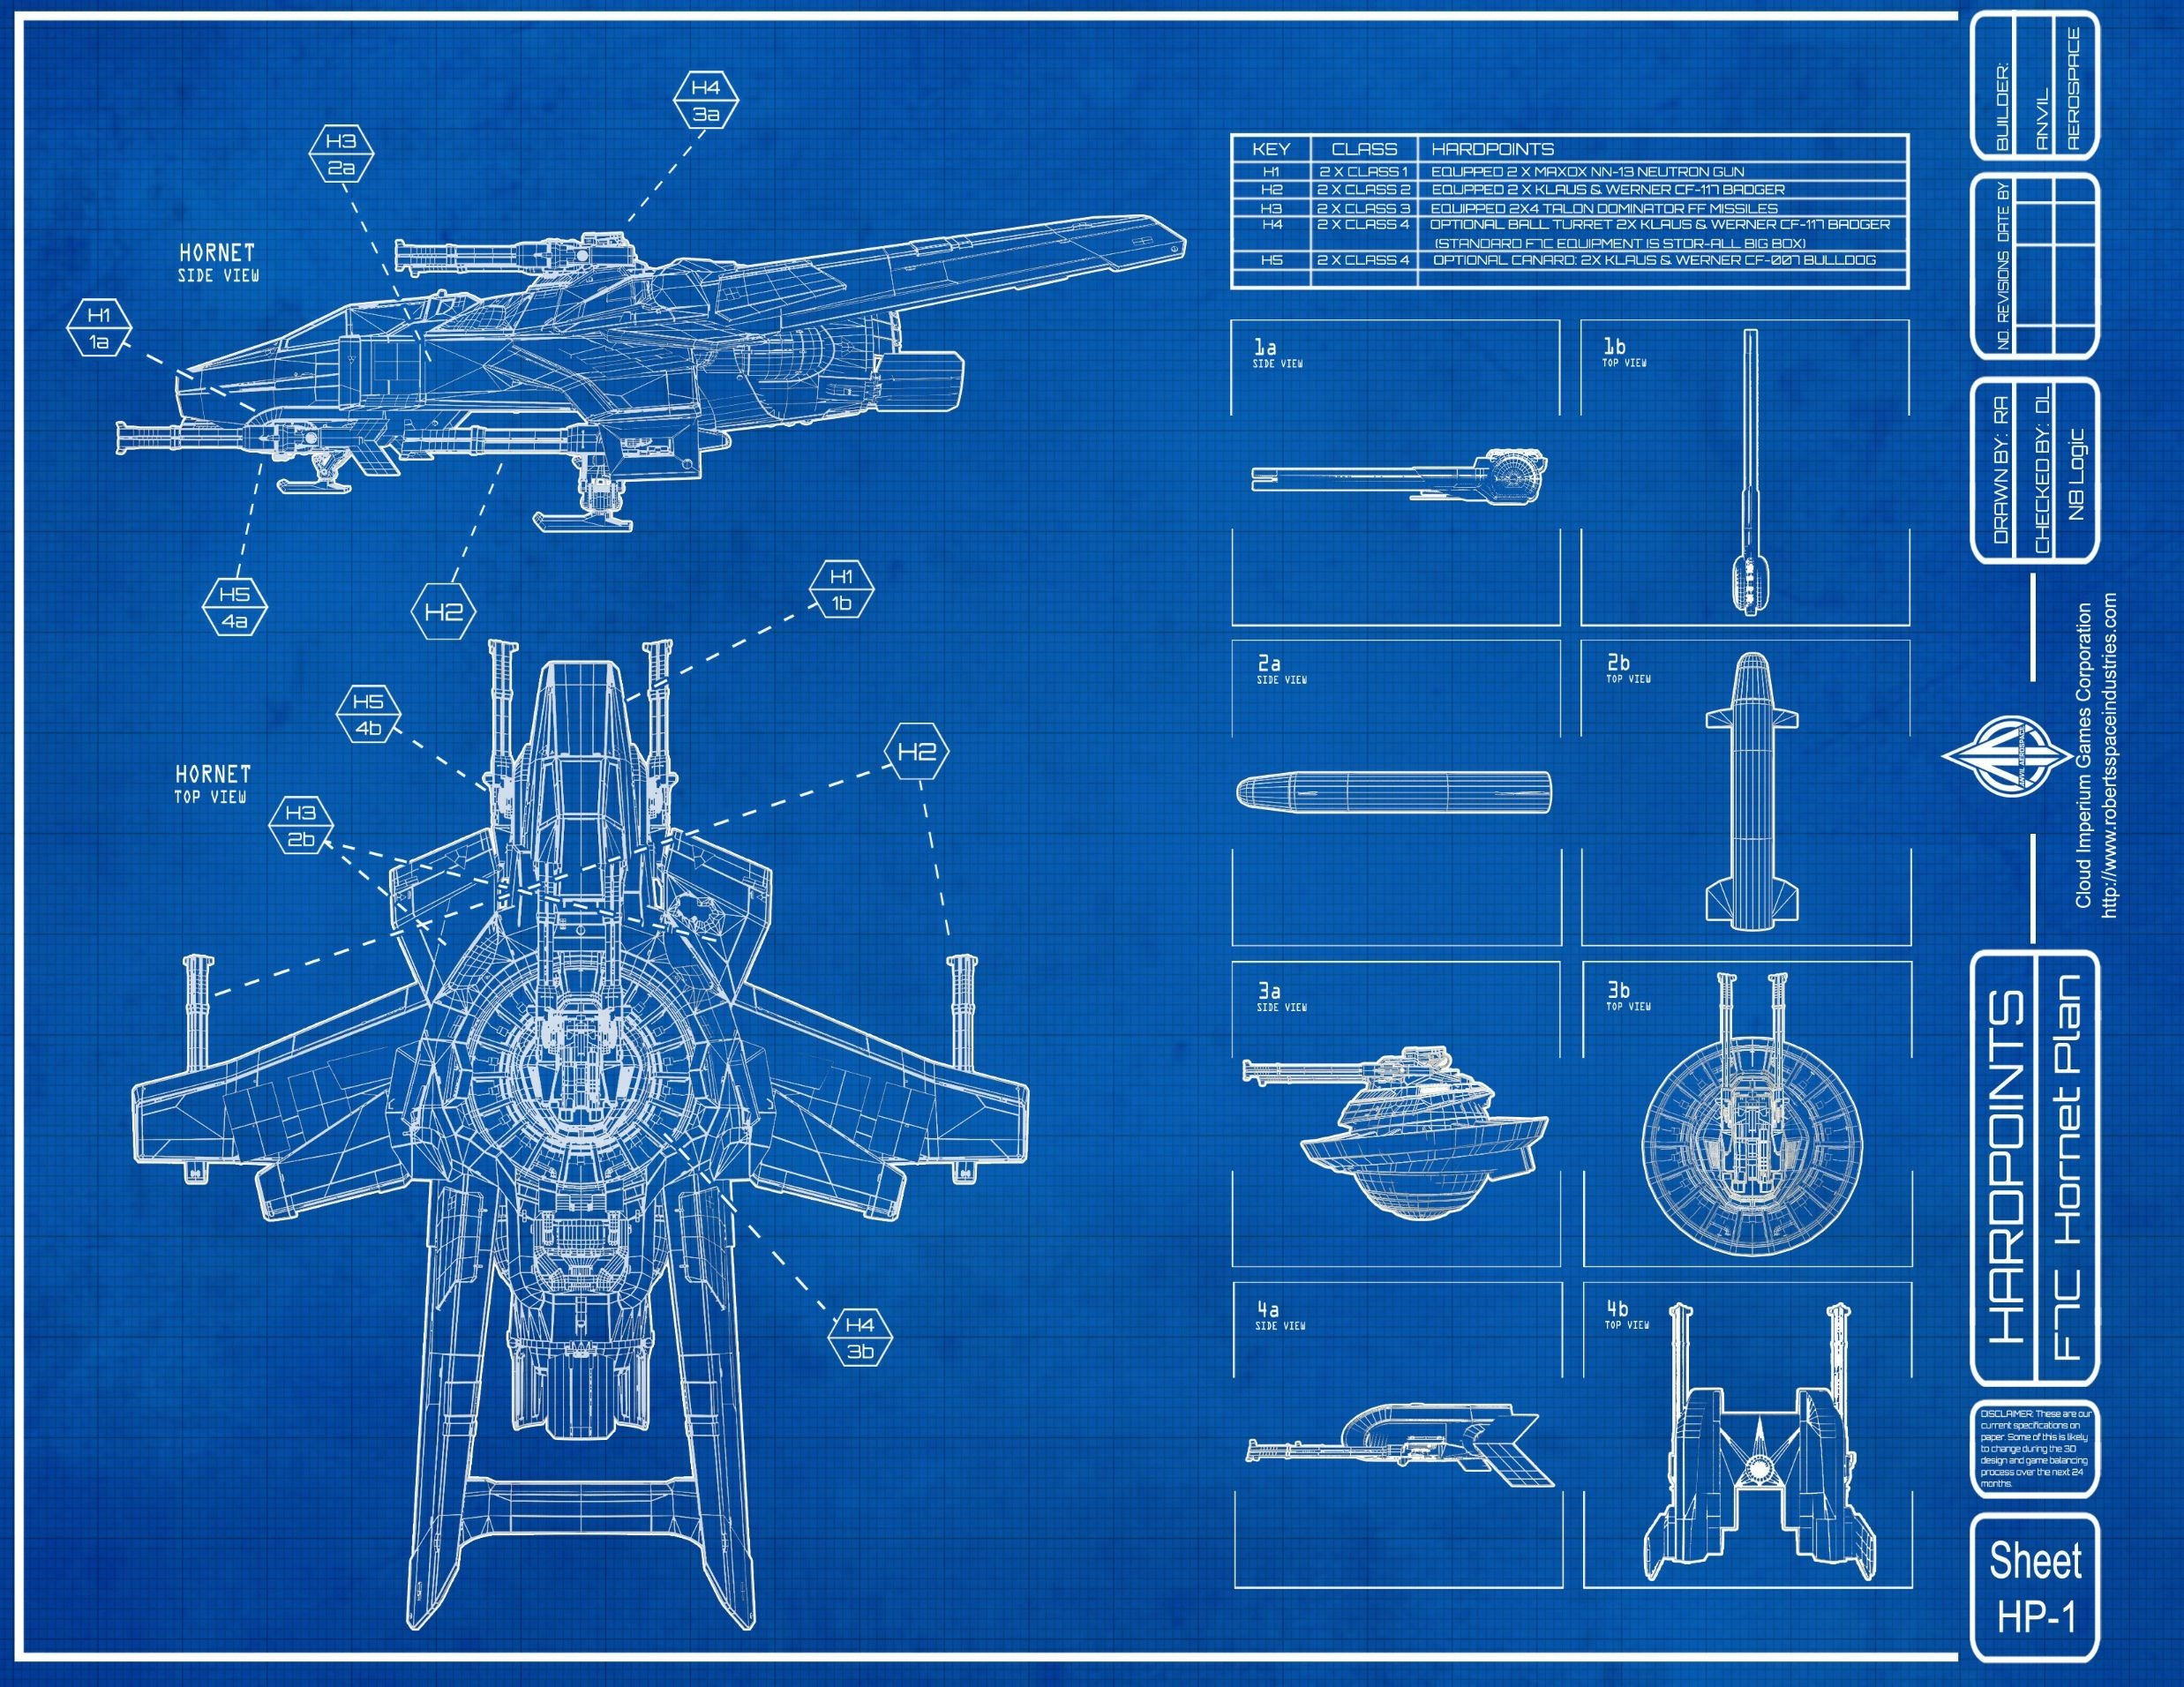 Wipeout Hd Wallpaper F7c Hornet Star Citizen Schematic Blueprints Hd